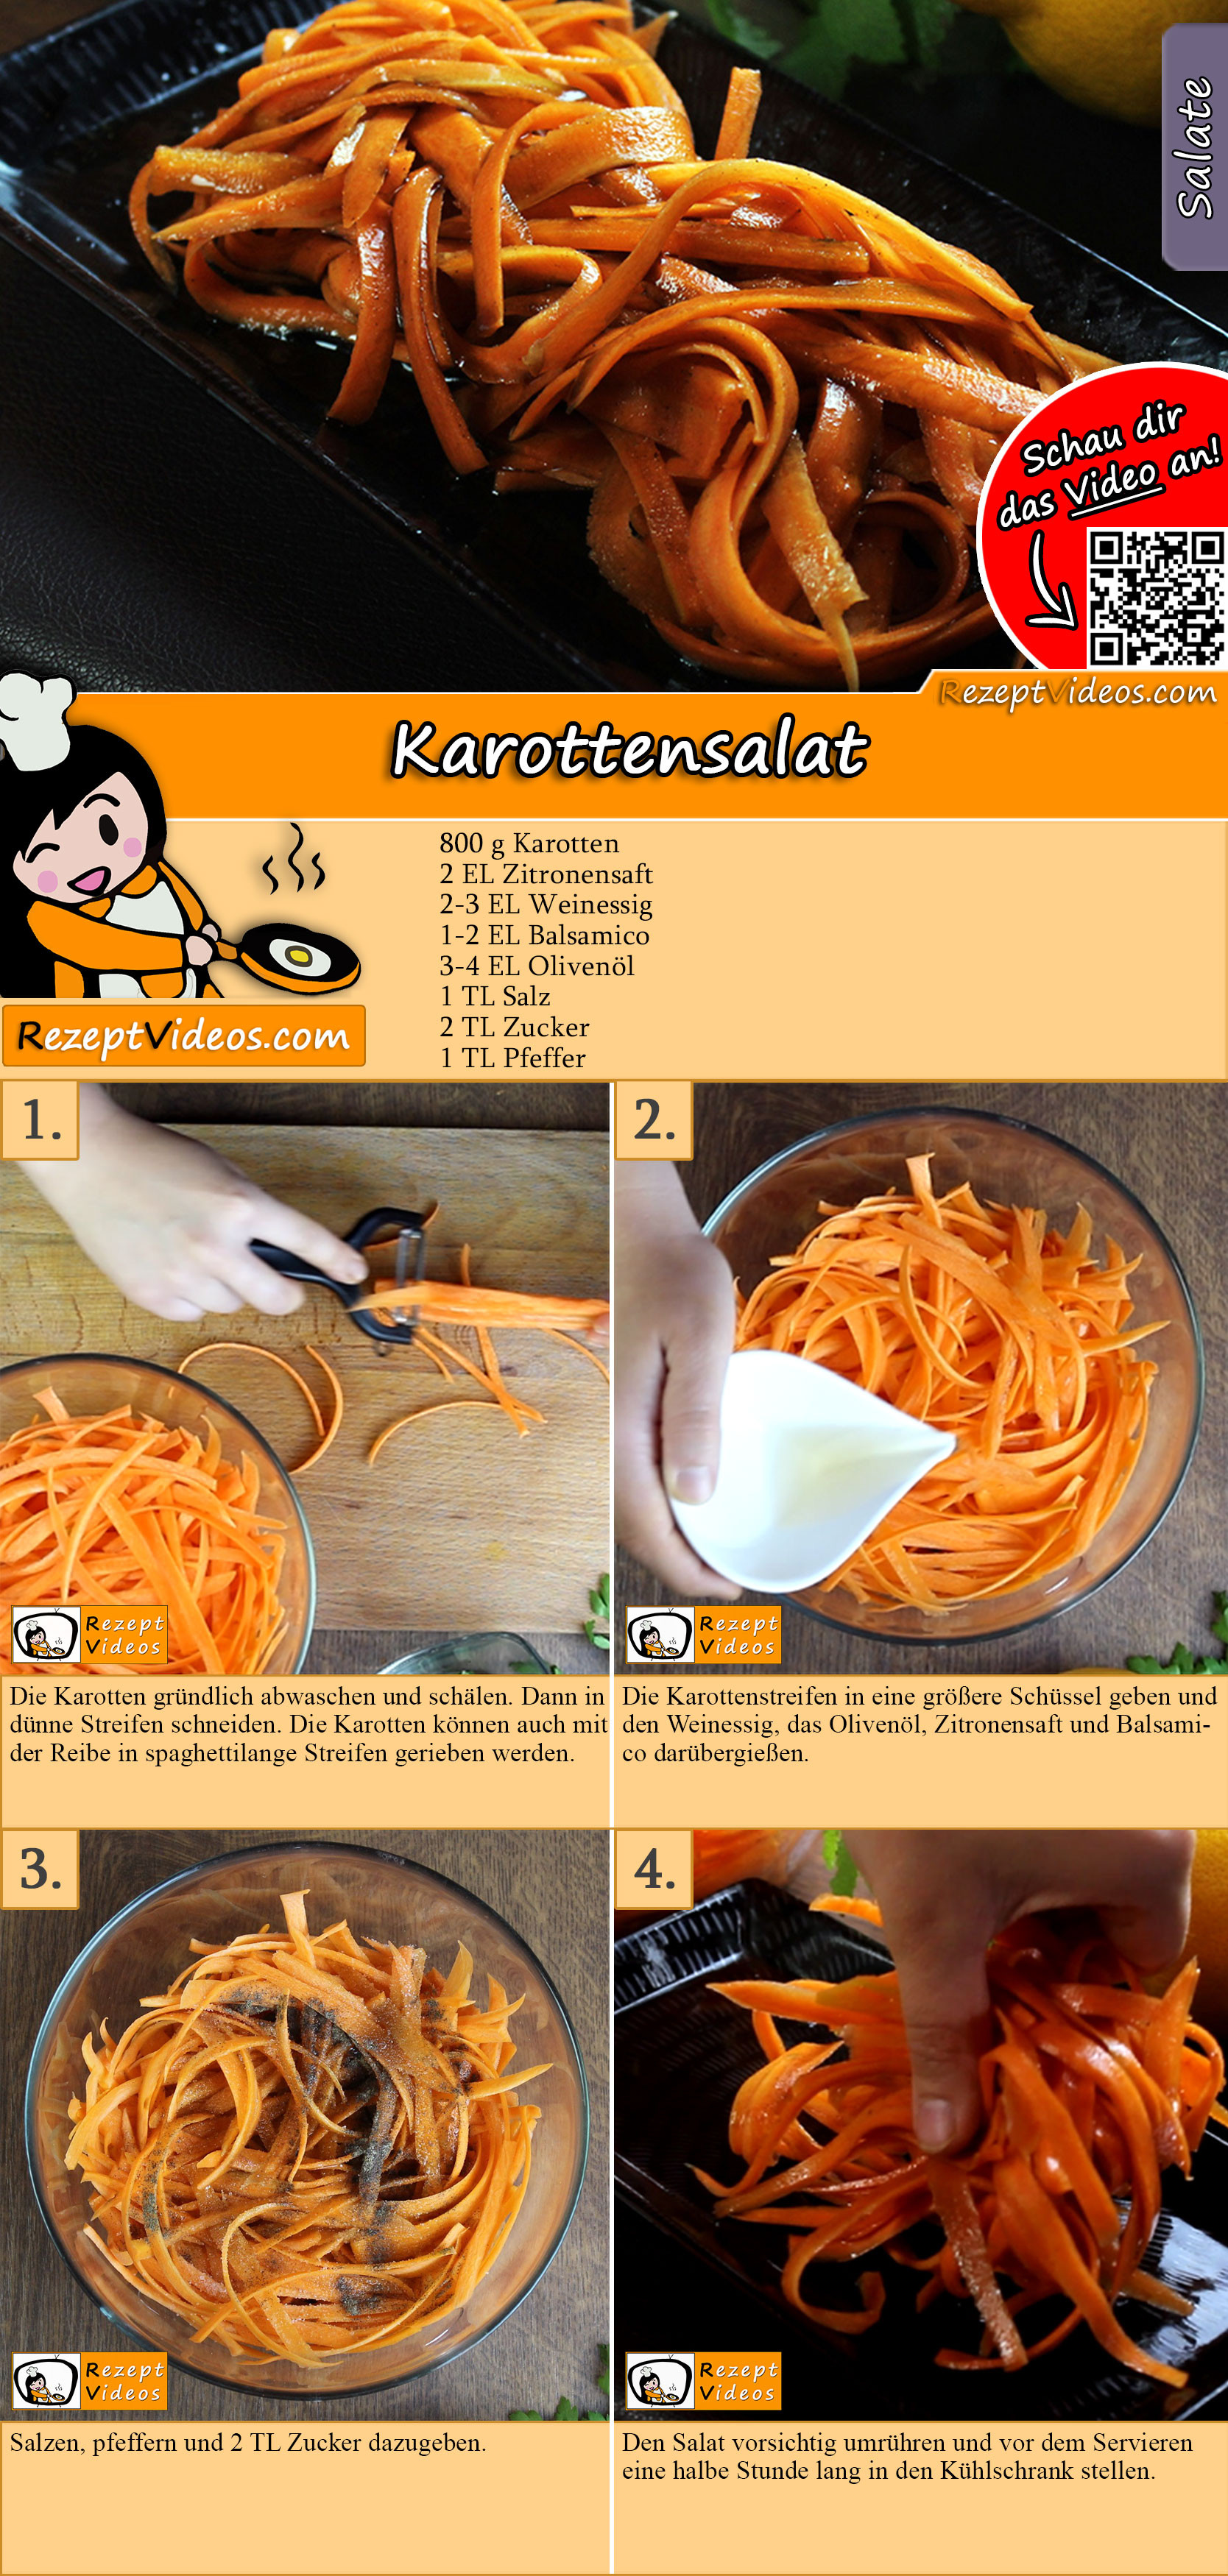 Karottensalat Rezept mit Video